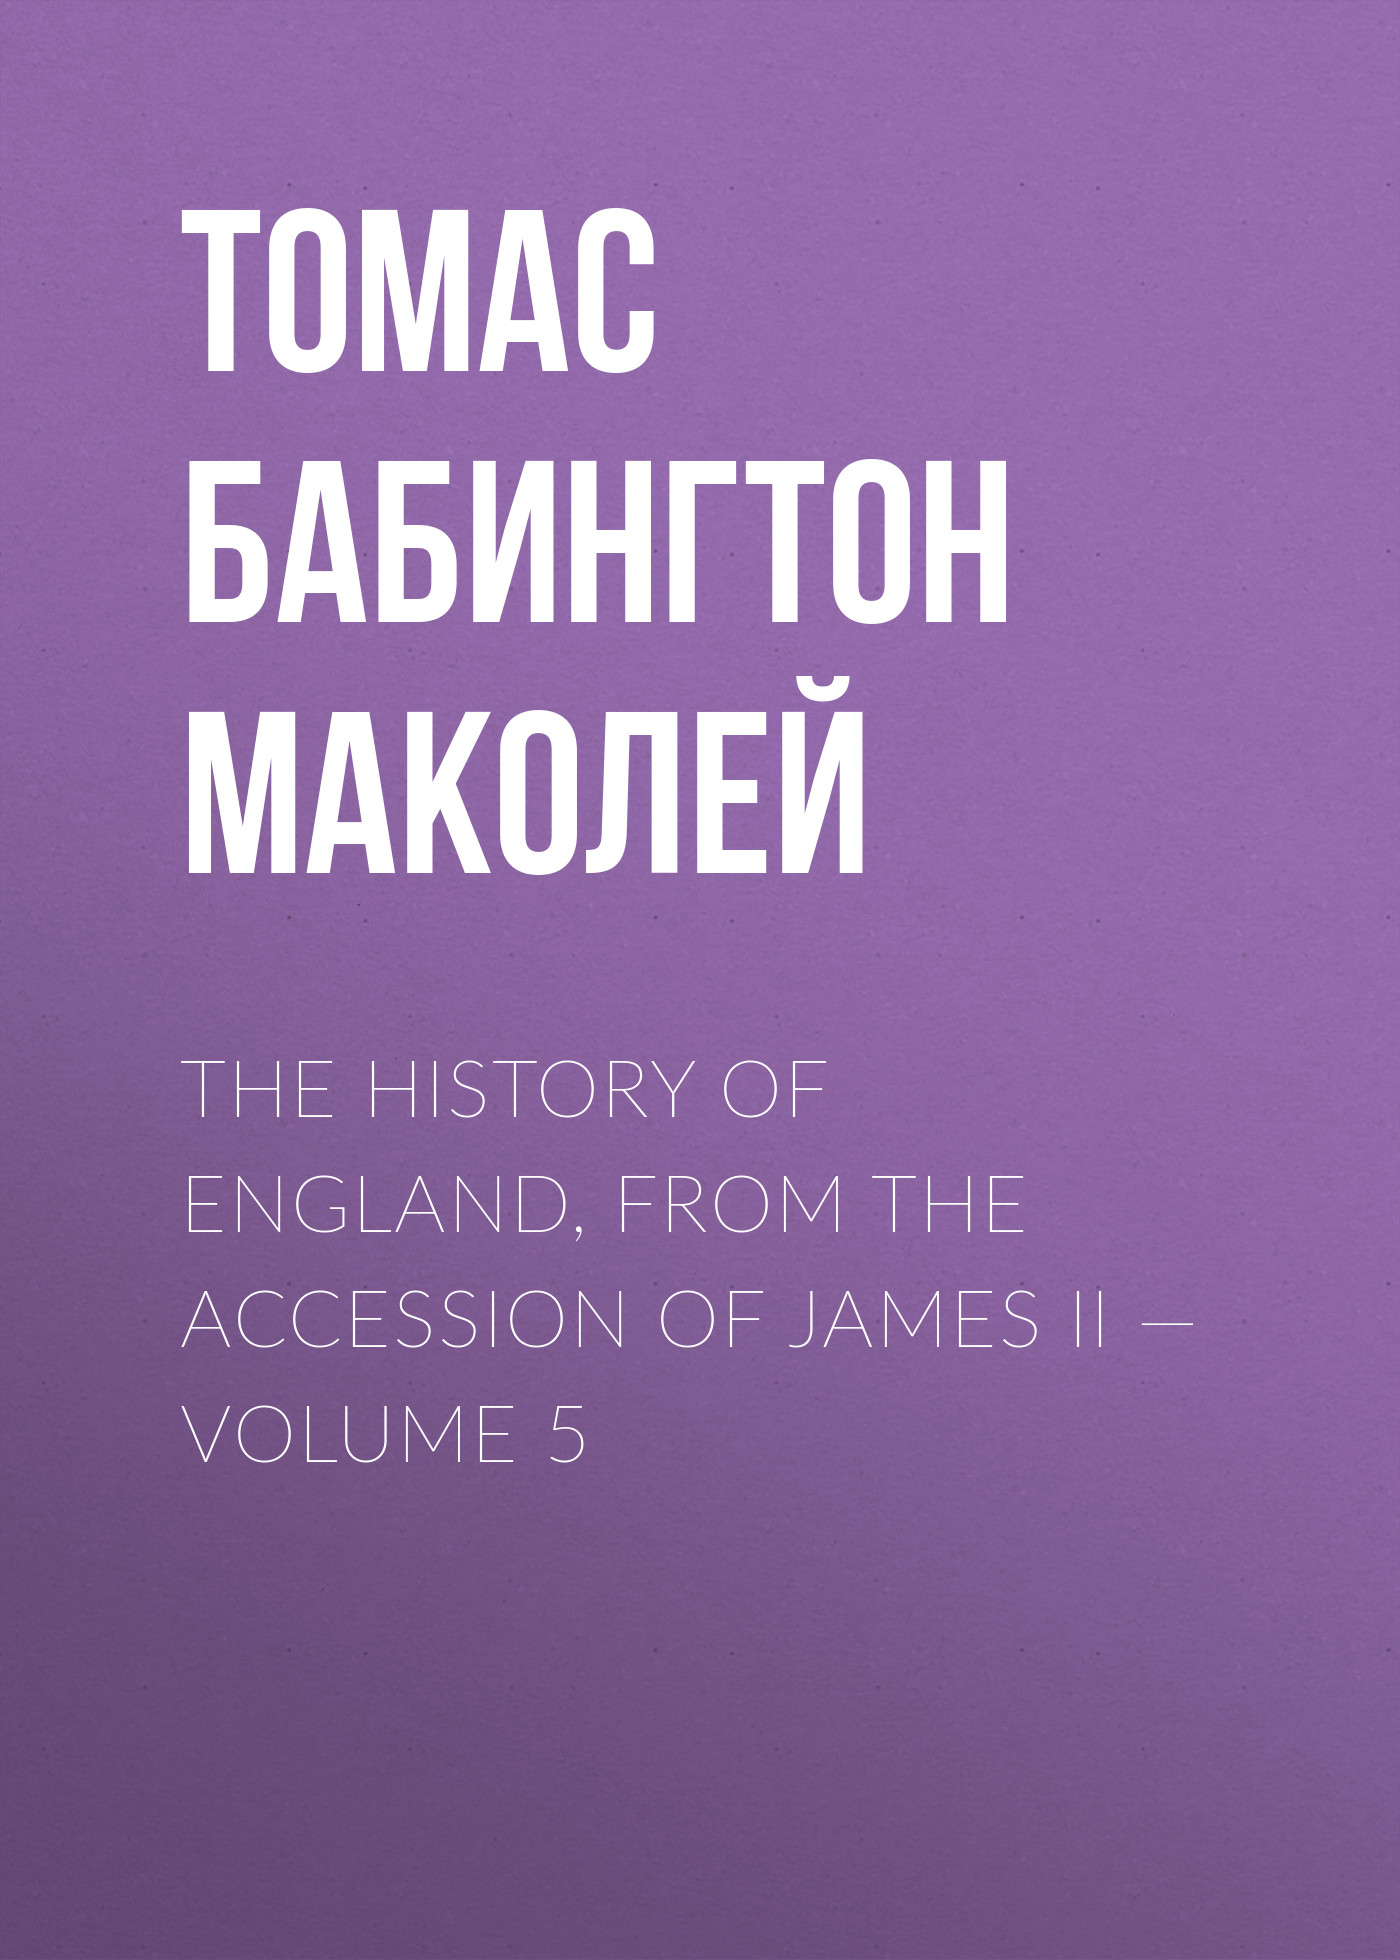 Фото - Томас Бабингтон Маколей The History of England, from the Accession of James II — Volume 5 m guizot history of richard cromwell and the restoration of charles ii volume 2